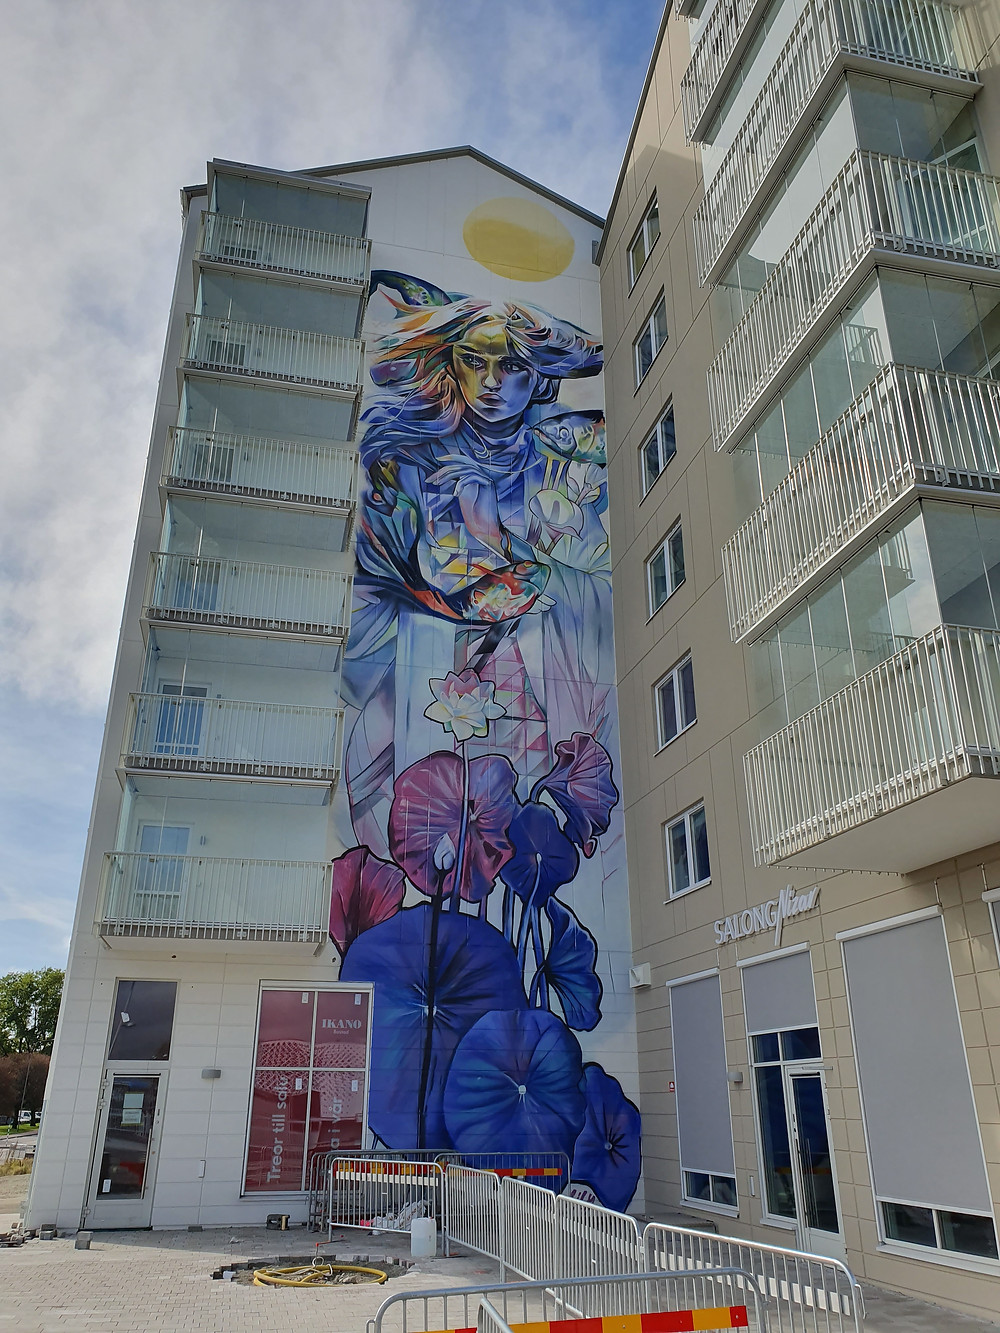 Amazing Mural Art by Lily Brik for the Artscape Saga Project 2019.